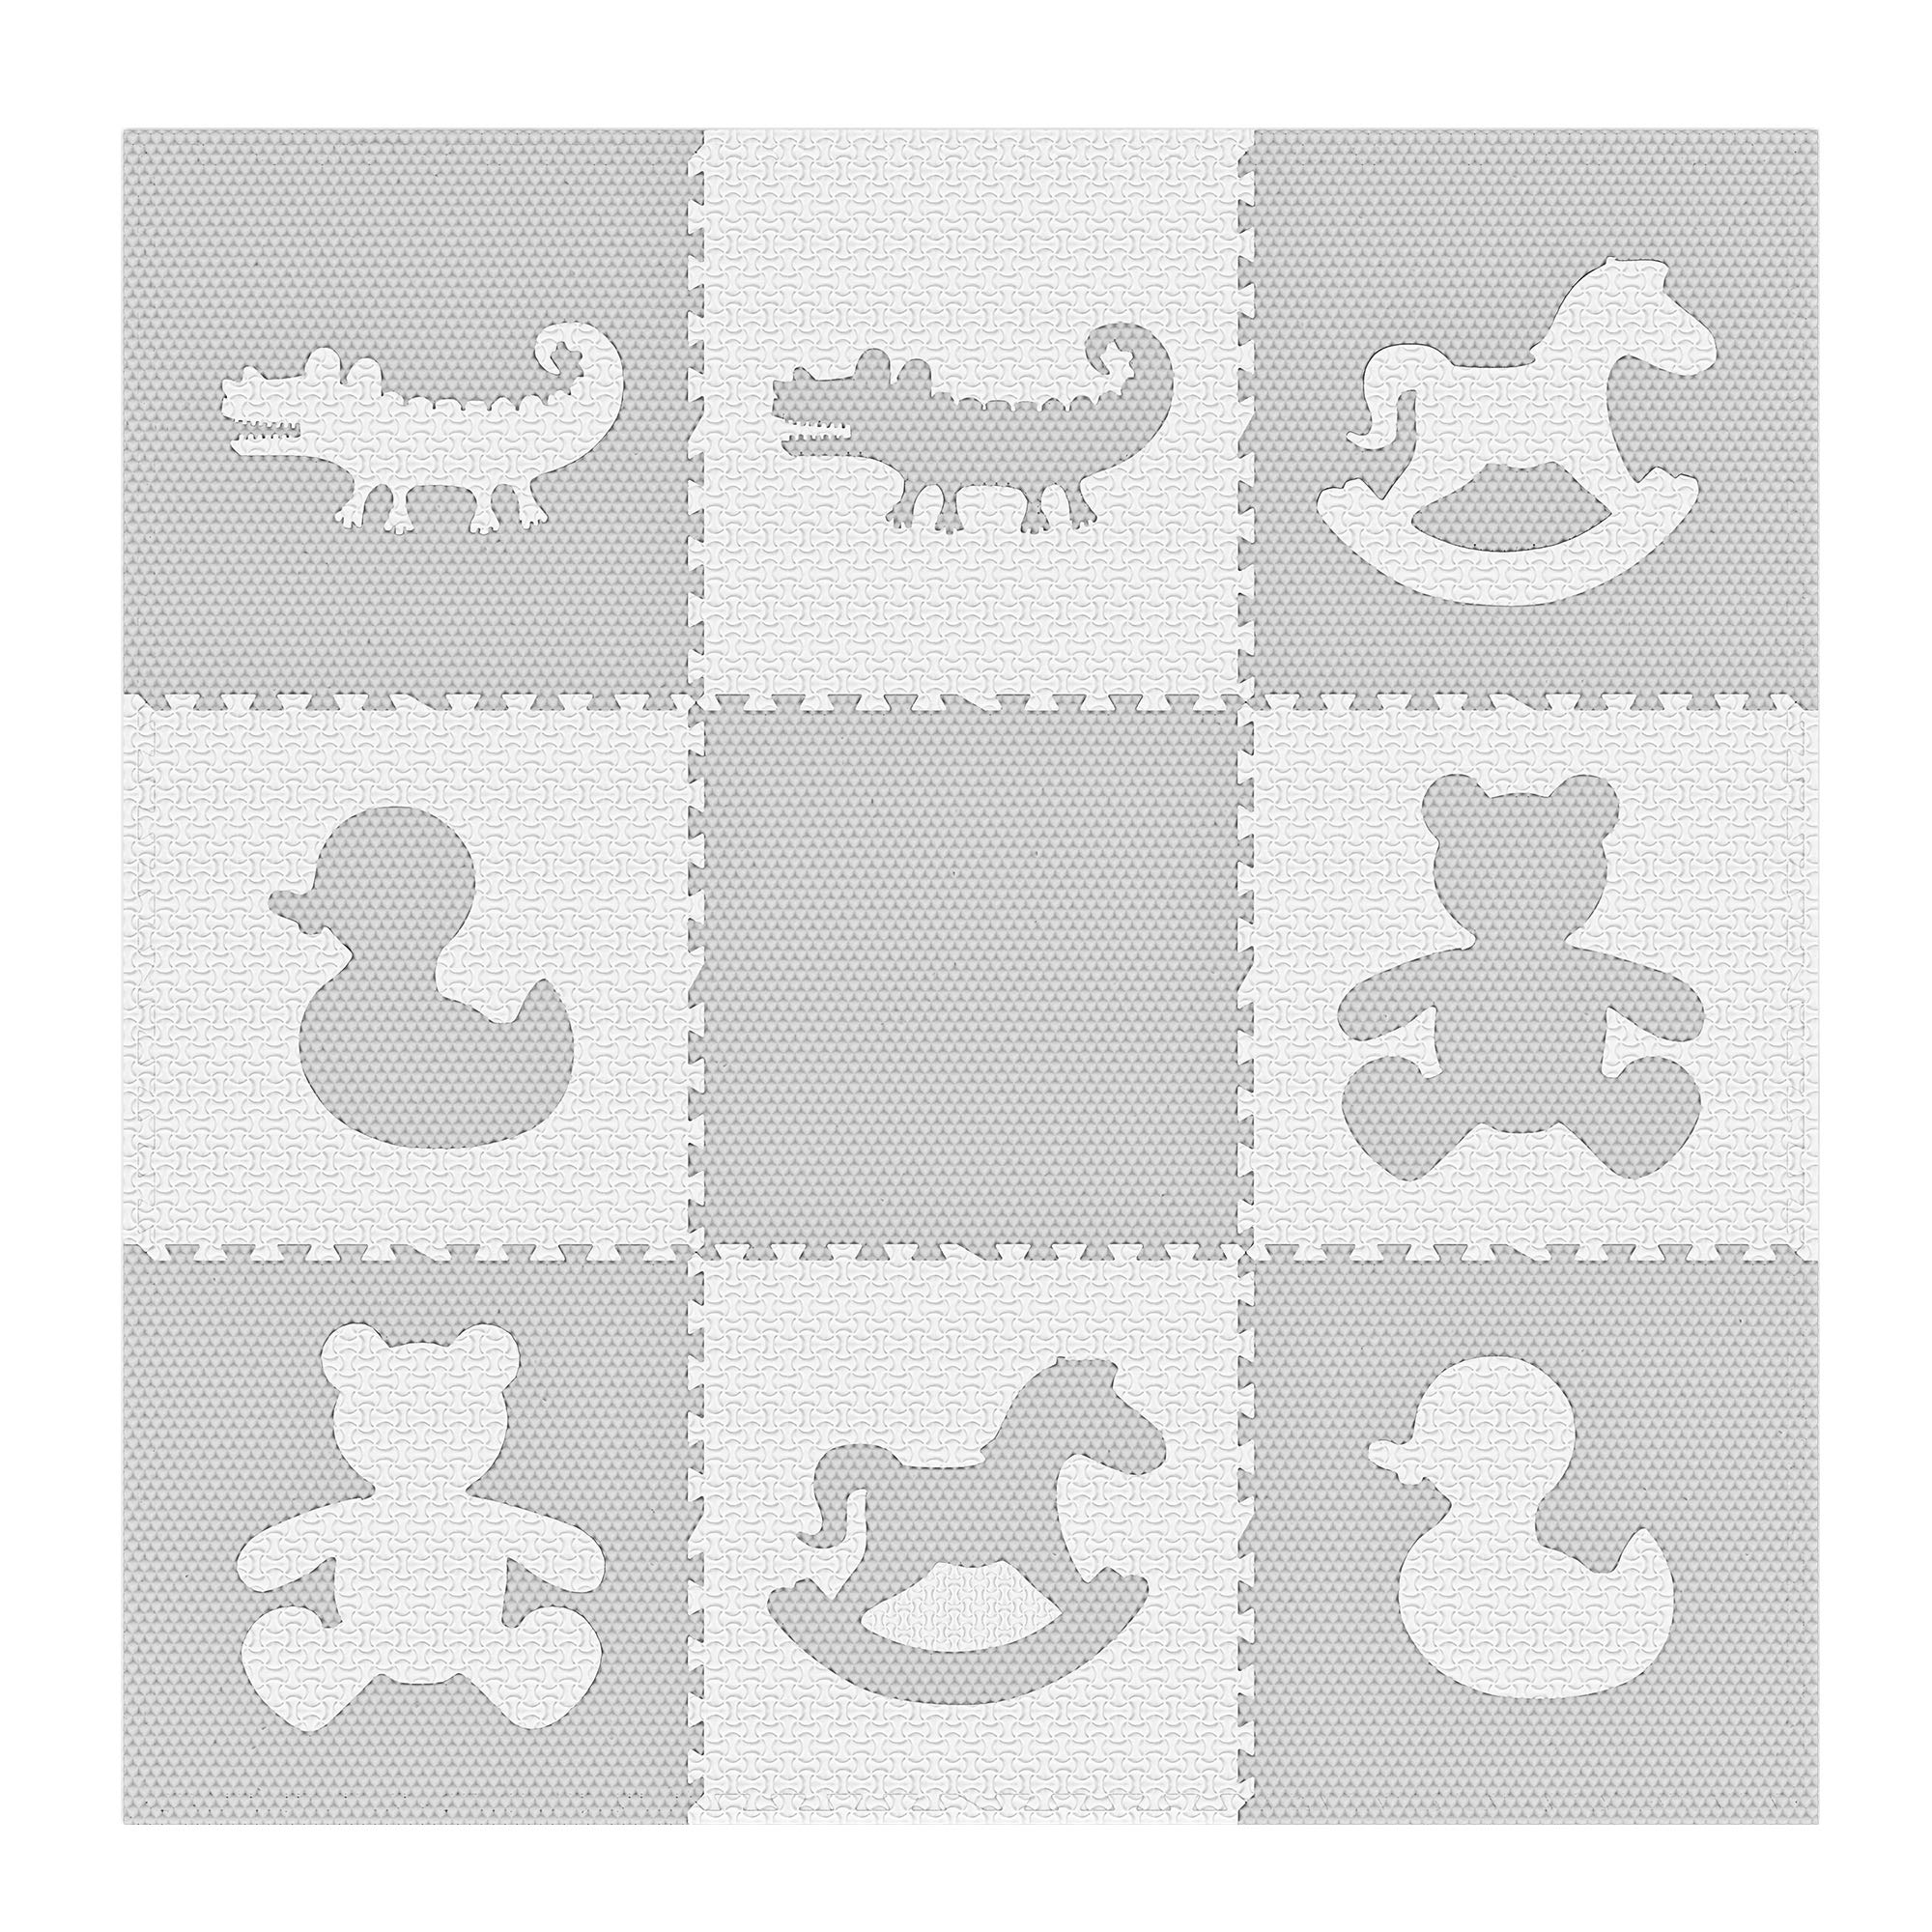 Extra Large Textured Jumbo Size 73'' x 73'' Puzzle Play Mat EVA Foam Non-Toxic Waterproof Interlocking Tiles Exercise & Learn Modern Style - Grey/White by Weizzer Toys